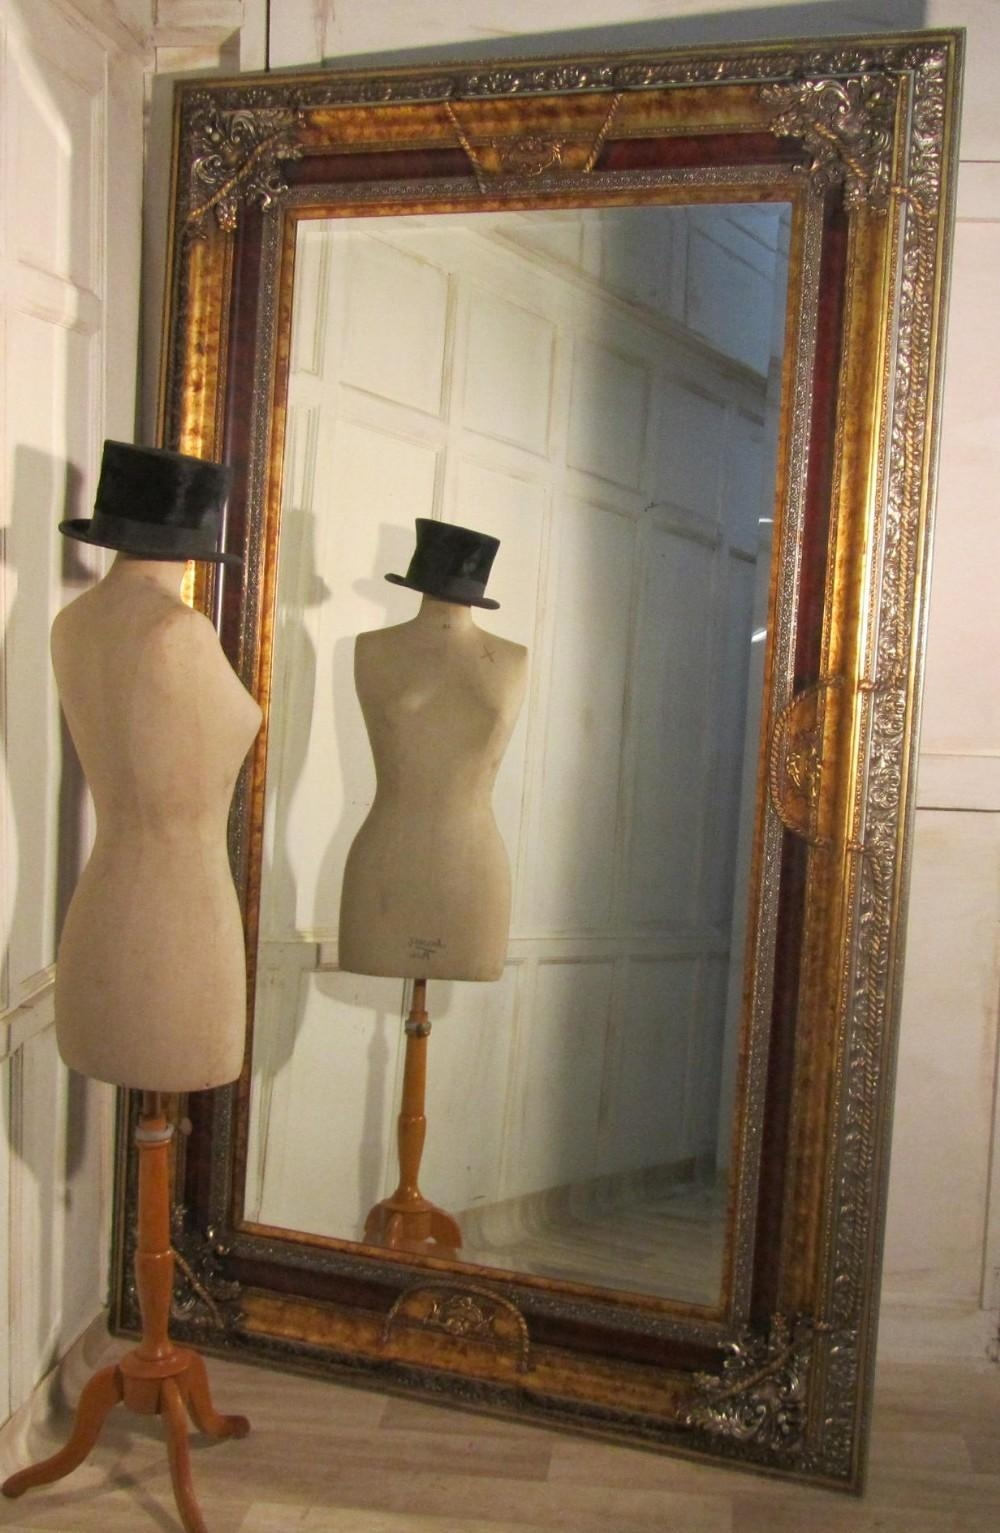 Decorative Large Decorative Wall Mirrors With Regard To Big Wall Mirrors (View 6 of 20)